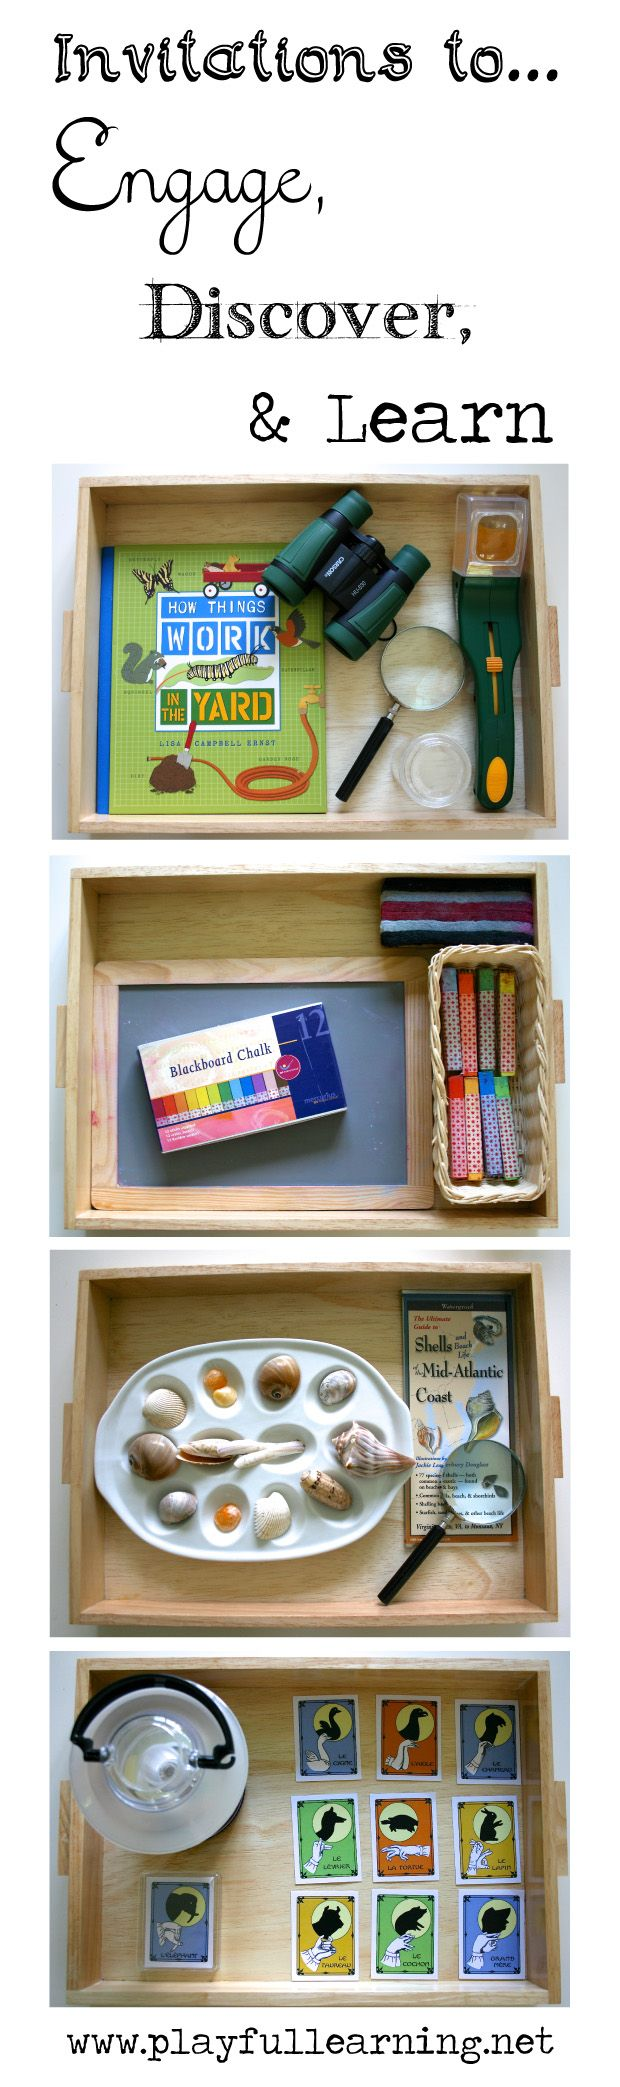 Create simple invitations to help engage your children in meaningful experiences...: Create Simple, New Old Materials, Discovery Boxes, Create Invitations, Invitations Provoc, Plays Experiment, Engagement Children, Meaningful Plays, Simple Invitations